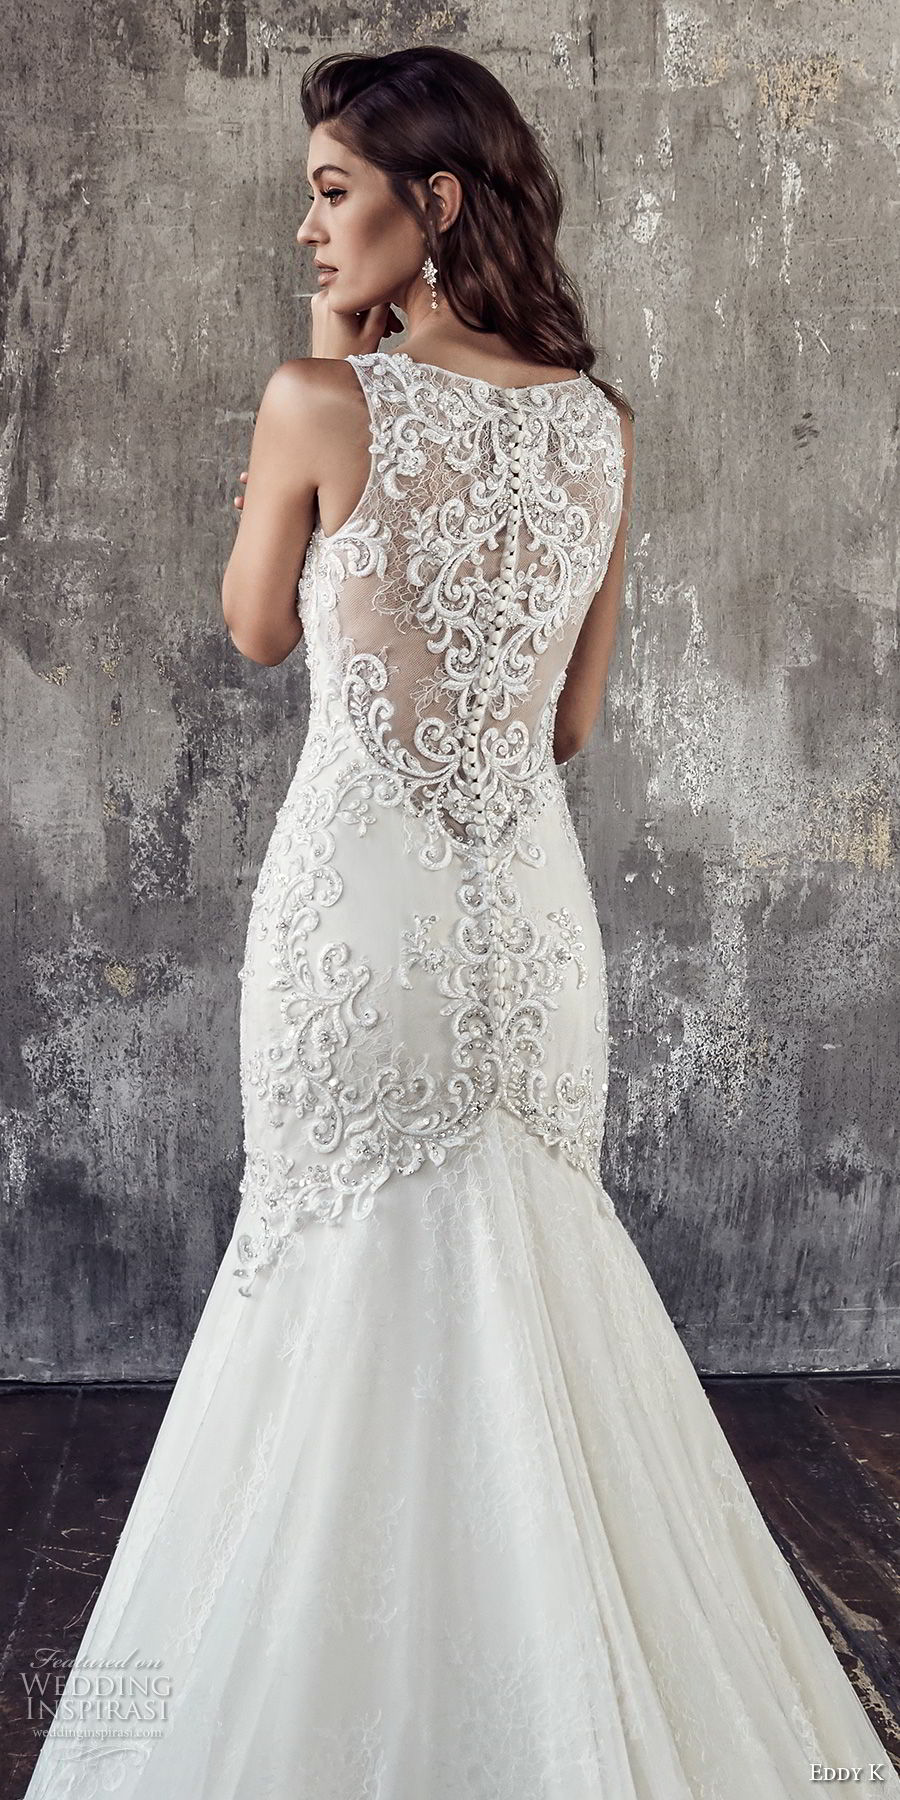 eddy k 2018 bridal sleeveless strap v neckline heavily embellished bodice elegant glamorous trumpet wedding dress covered lace back chapel train (203) zbv